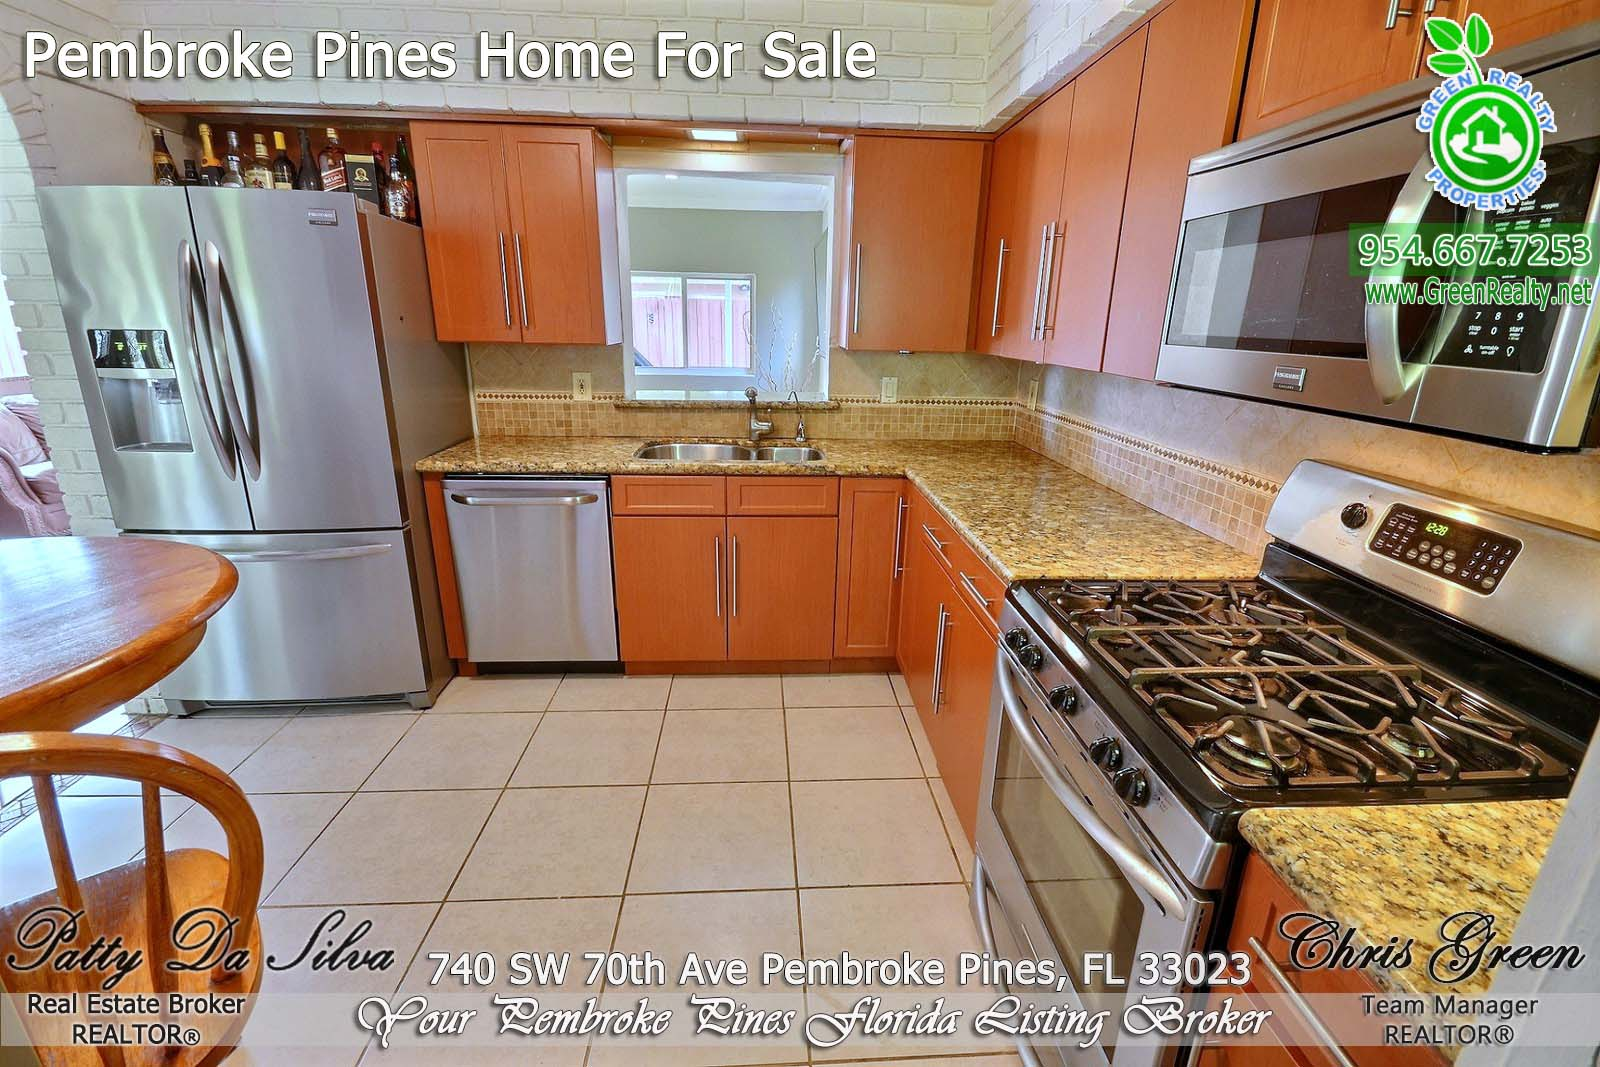 9 Patty Da Silva SELLS Pembroke Pines Homes (3)